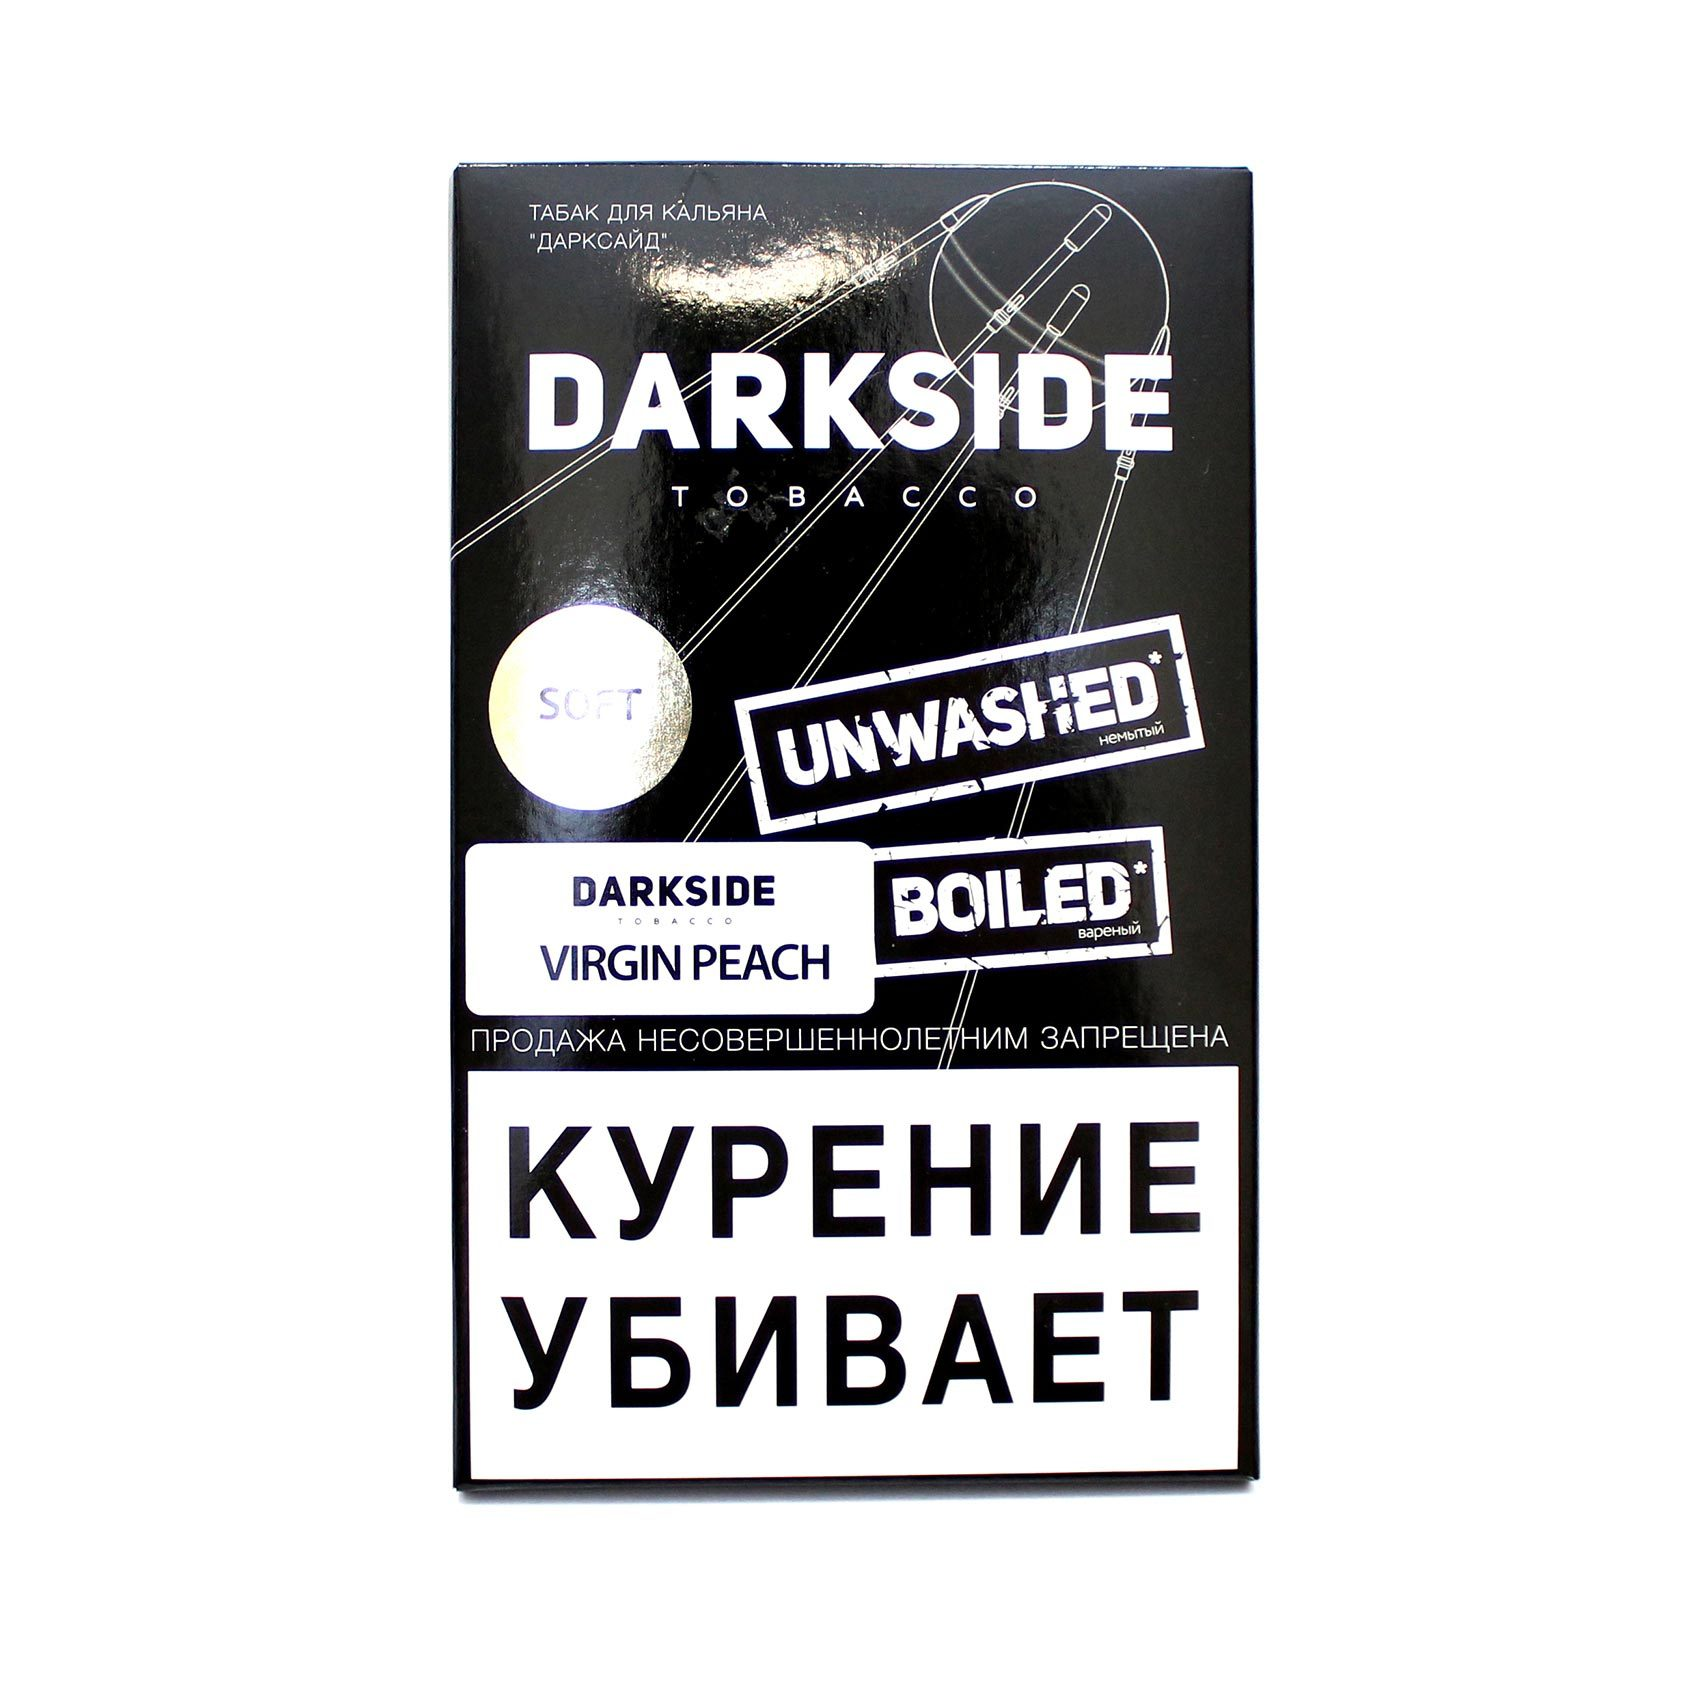 Табак для кальяна Dark Side Soft 100 гр. Virgin Peach